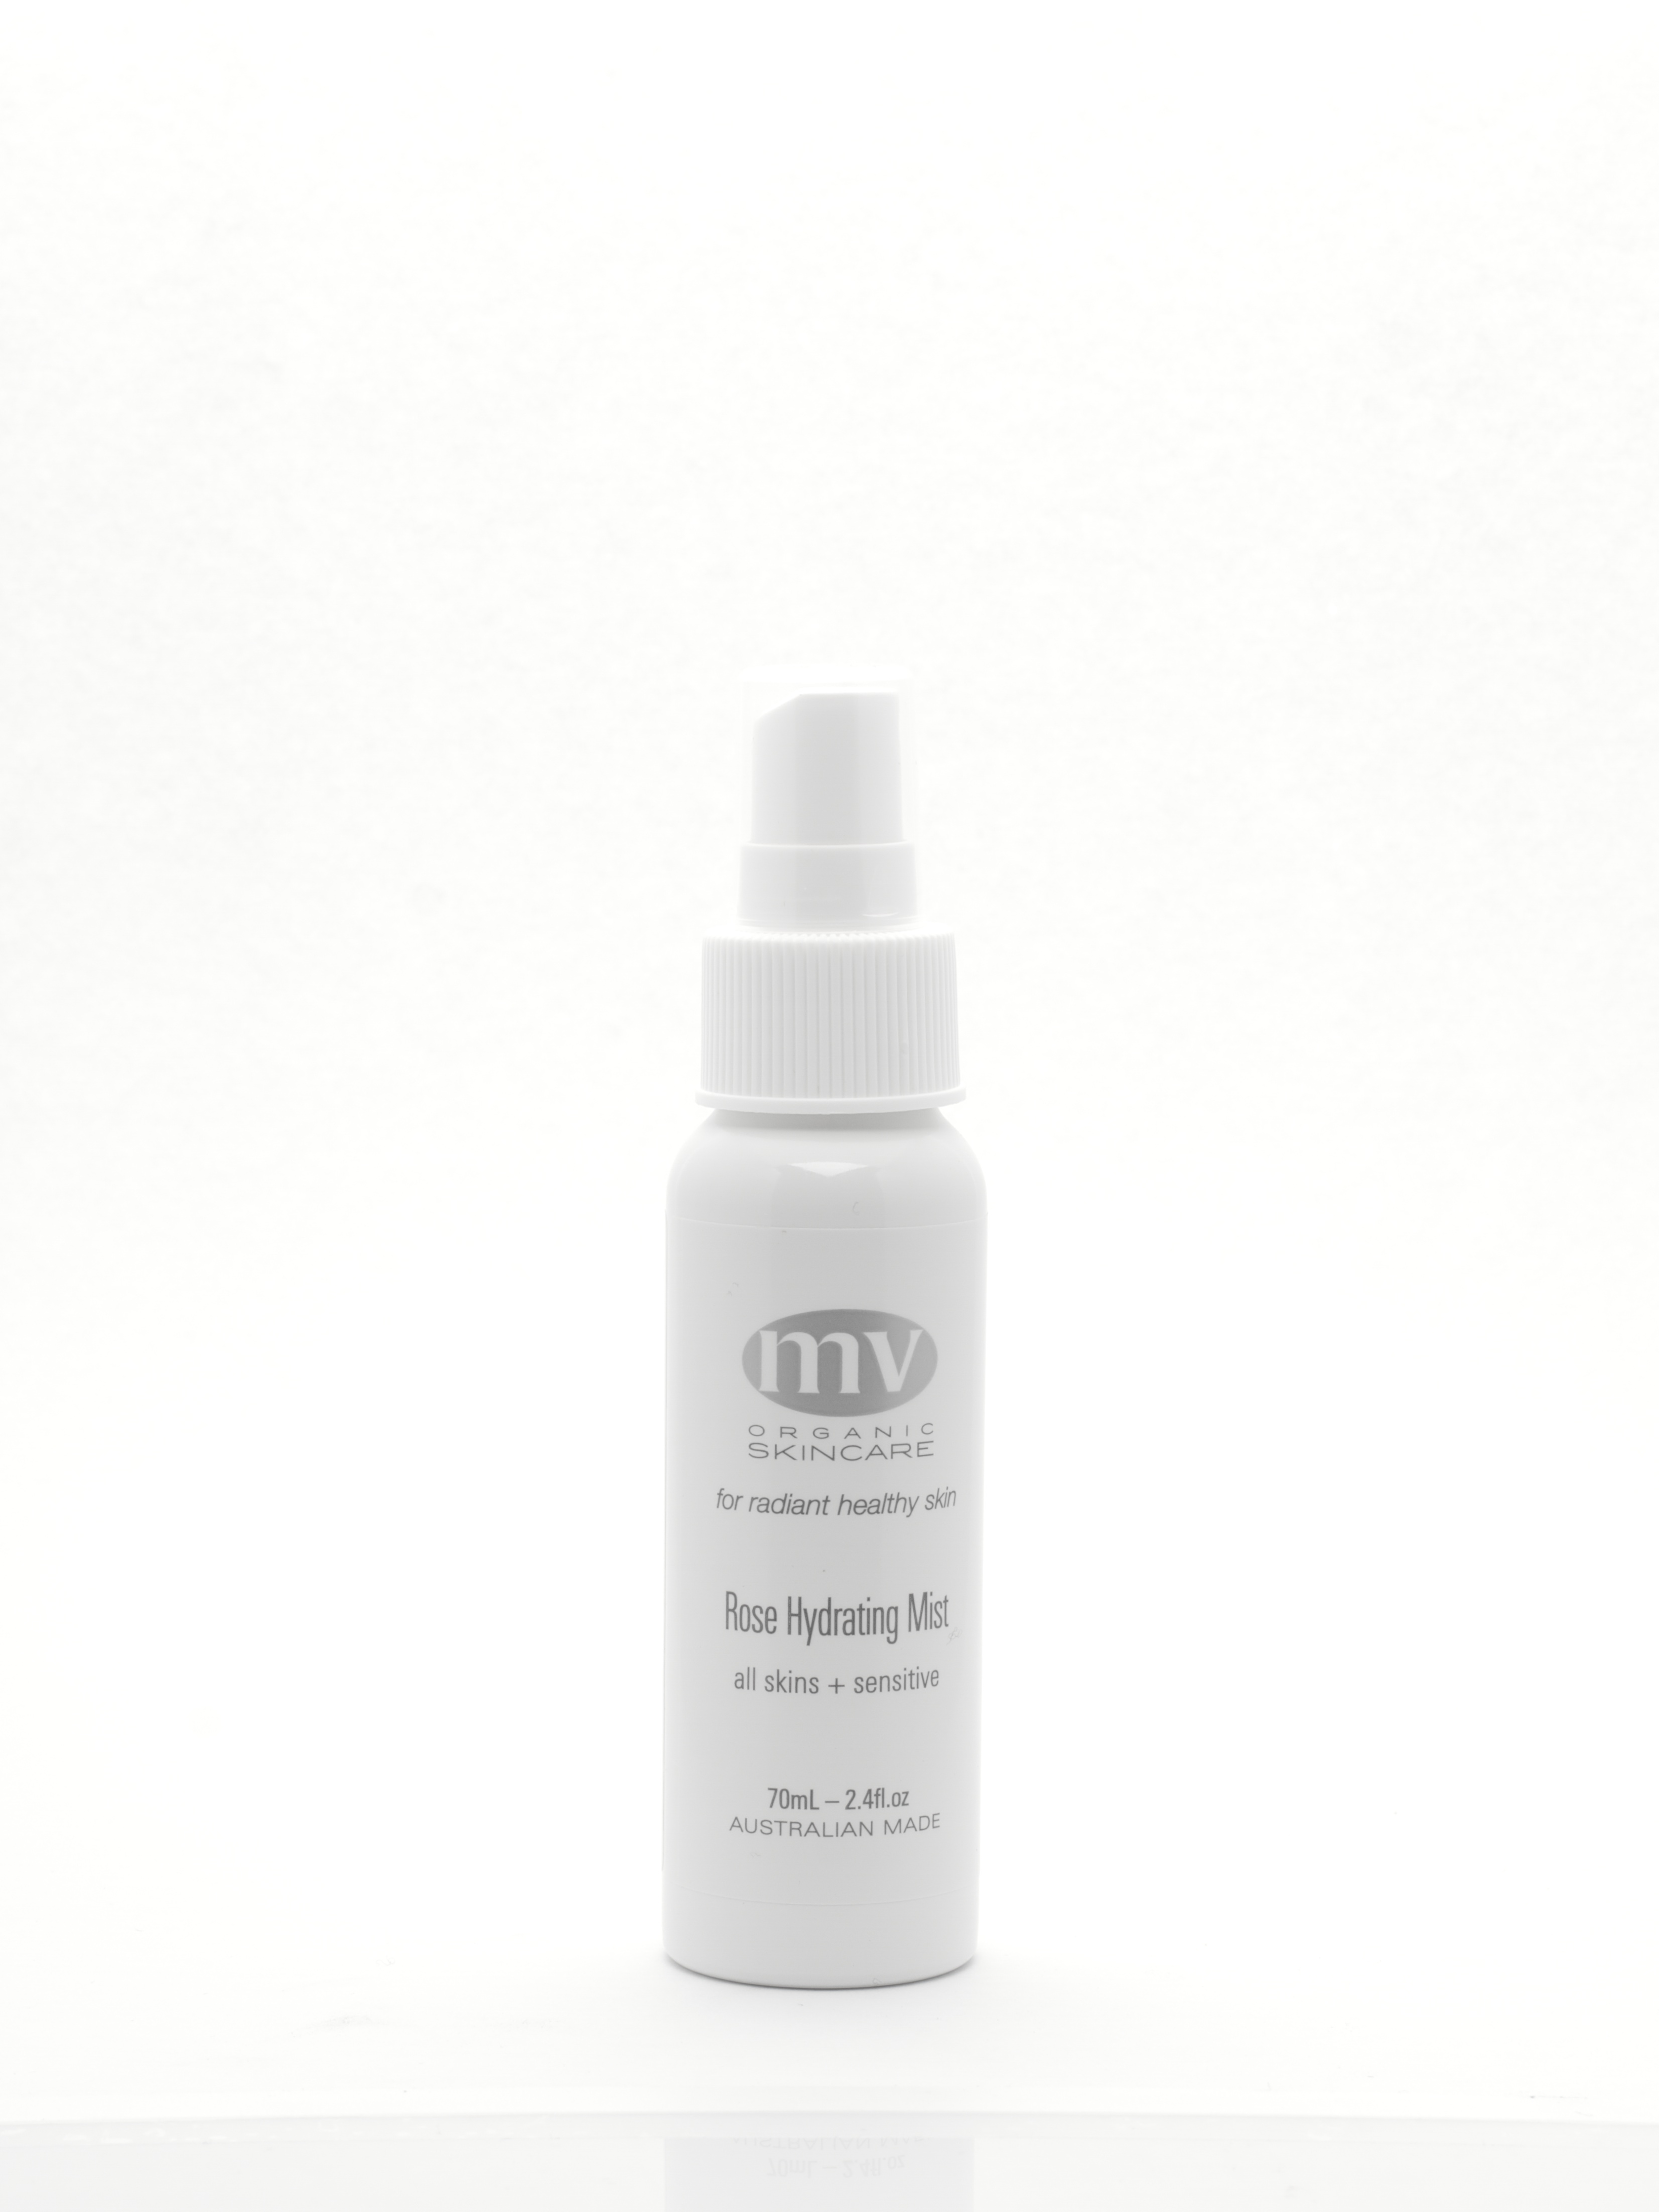 MV_Rose_Hydrating_Mist_70ml (1)